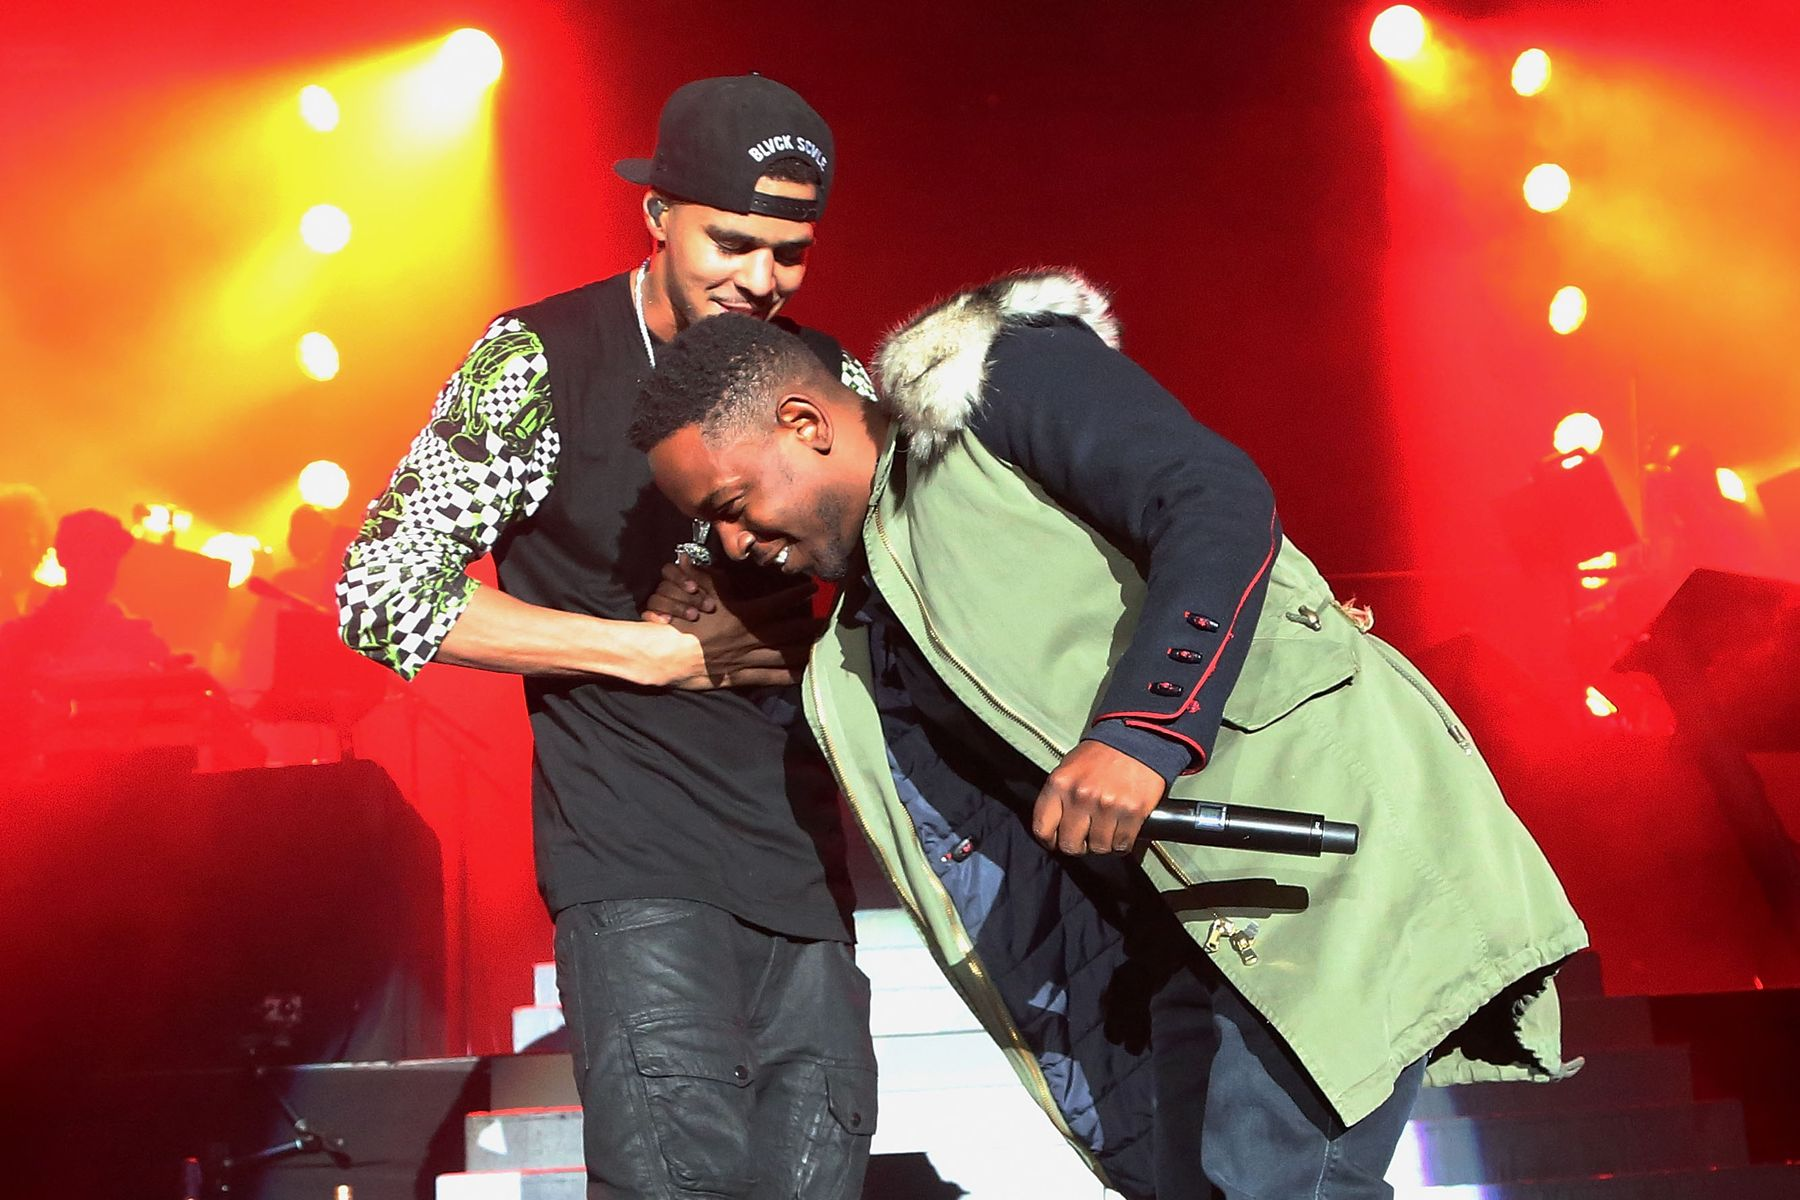 NEW YORK, NY - JANUARY 28:  Rappers J. Cole and Kendrick Lamar perform at Madison Square Garden on January 28, 2014 in New York City.  (Photo by Taylor Hill/Getty Images)